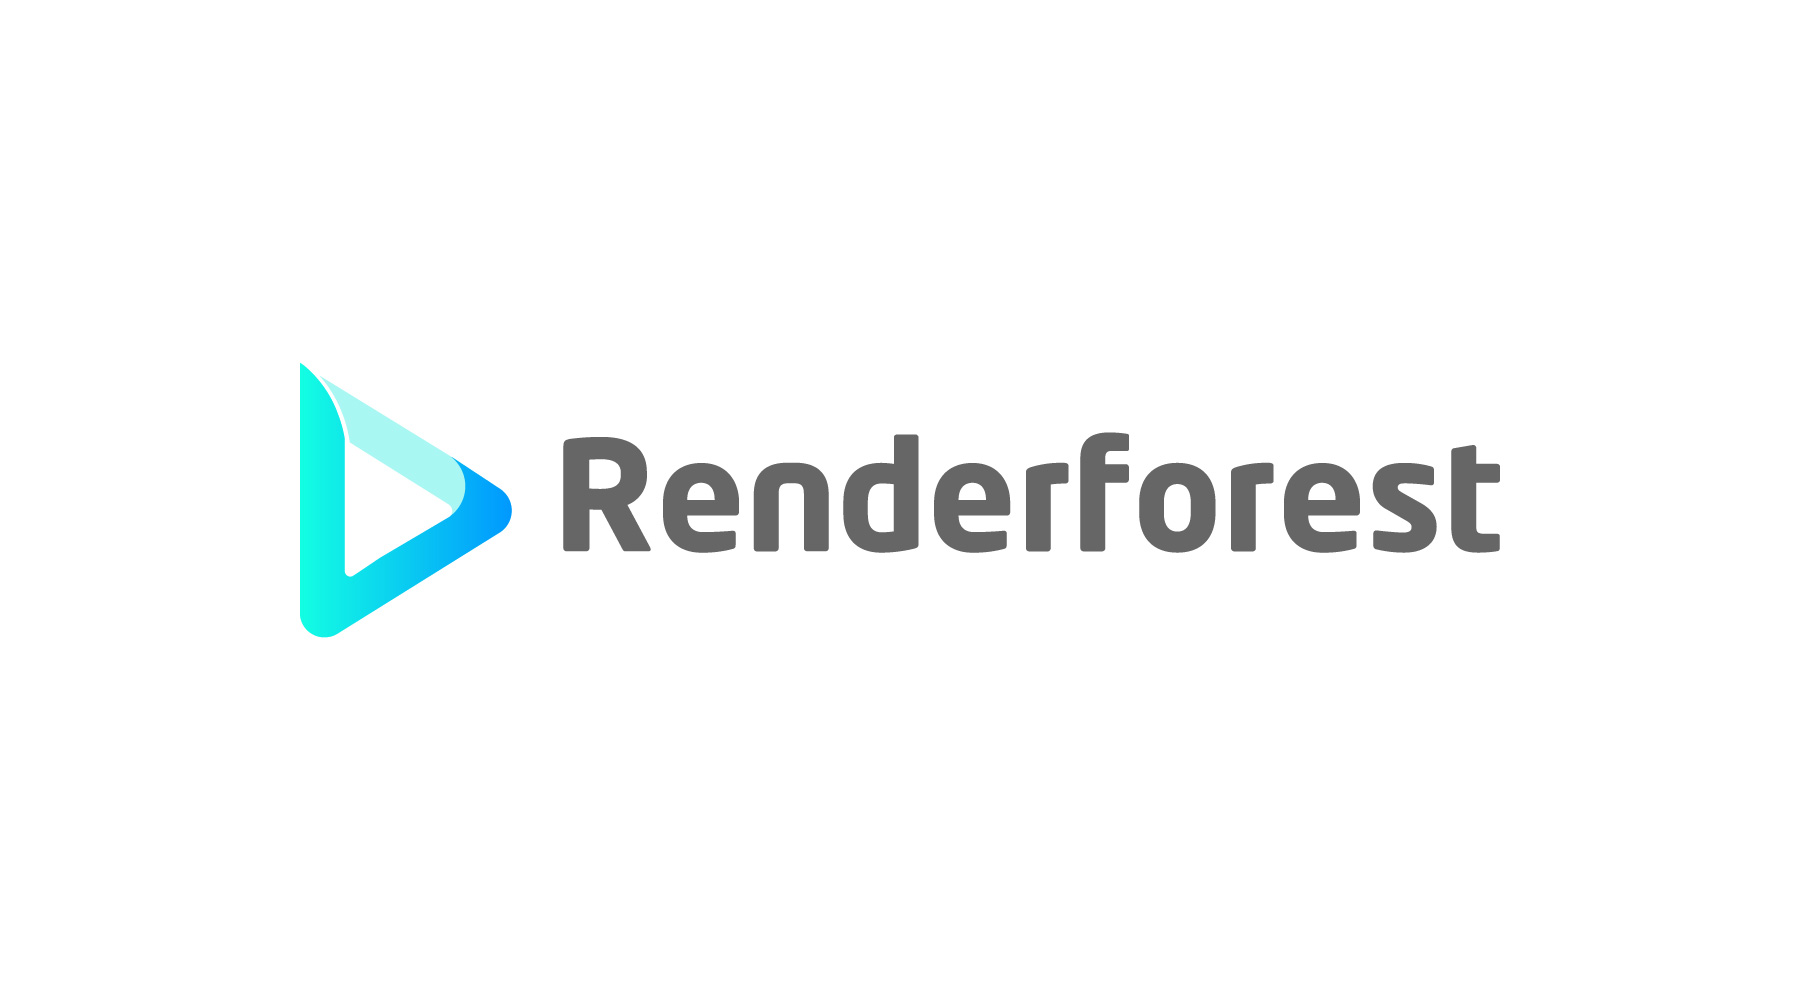 renderforest-logo